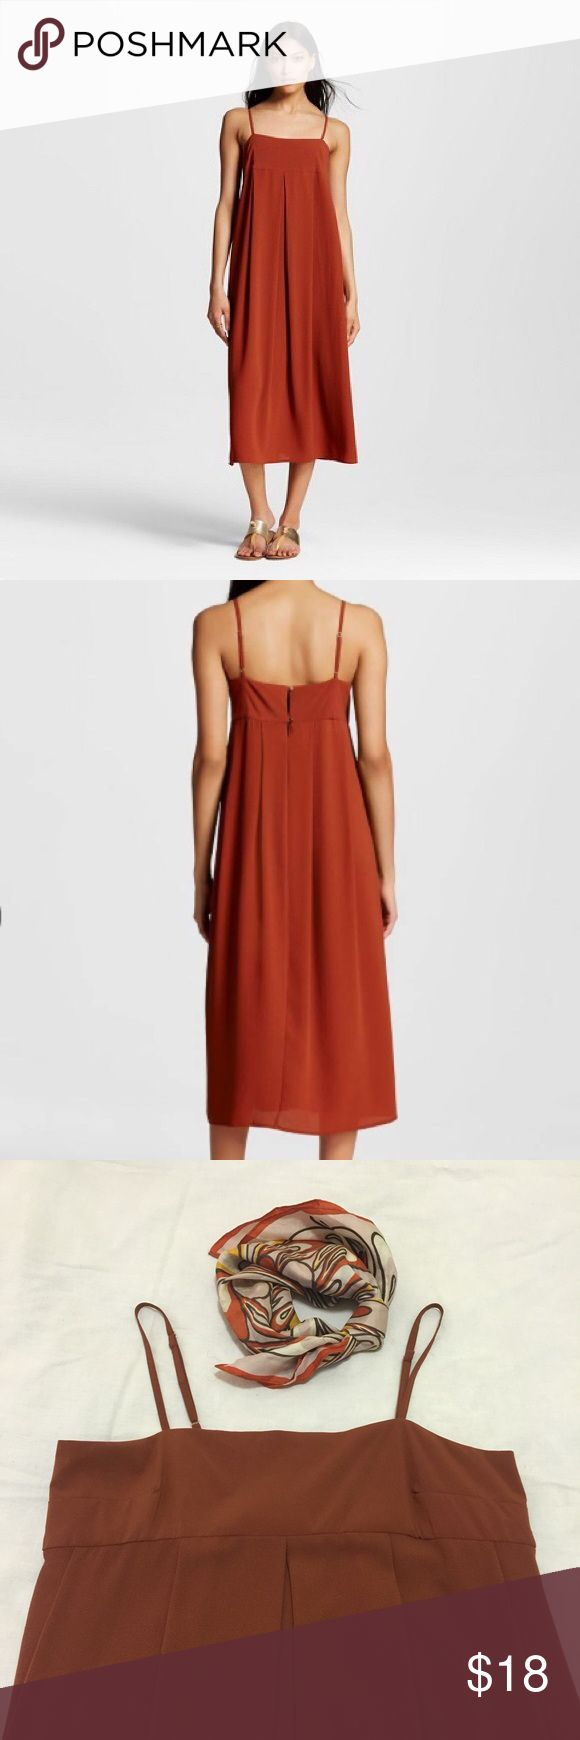 Who What Wear for Target rust empire dress XS re-poshing this lovely dress. never worn by me. fits loose for an XS for a bohemian look! who what wear Dresses Maxi